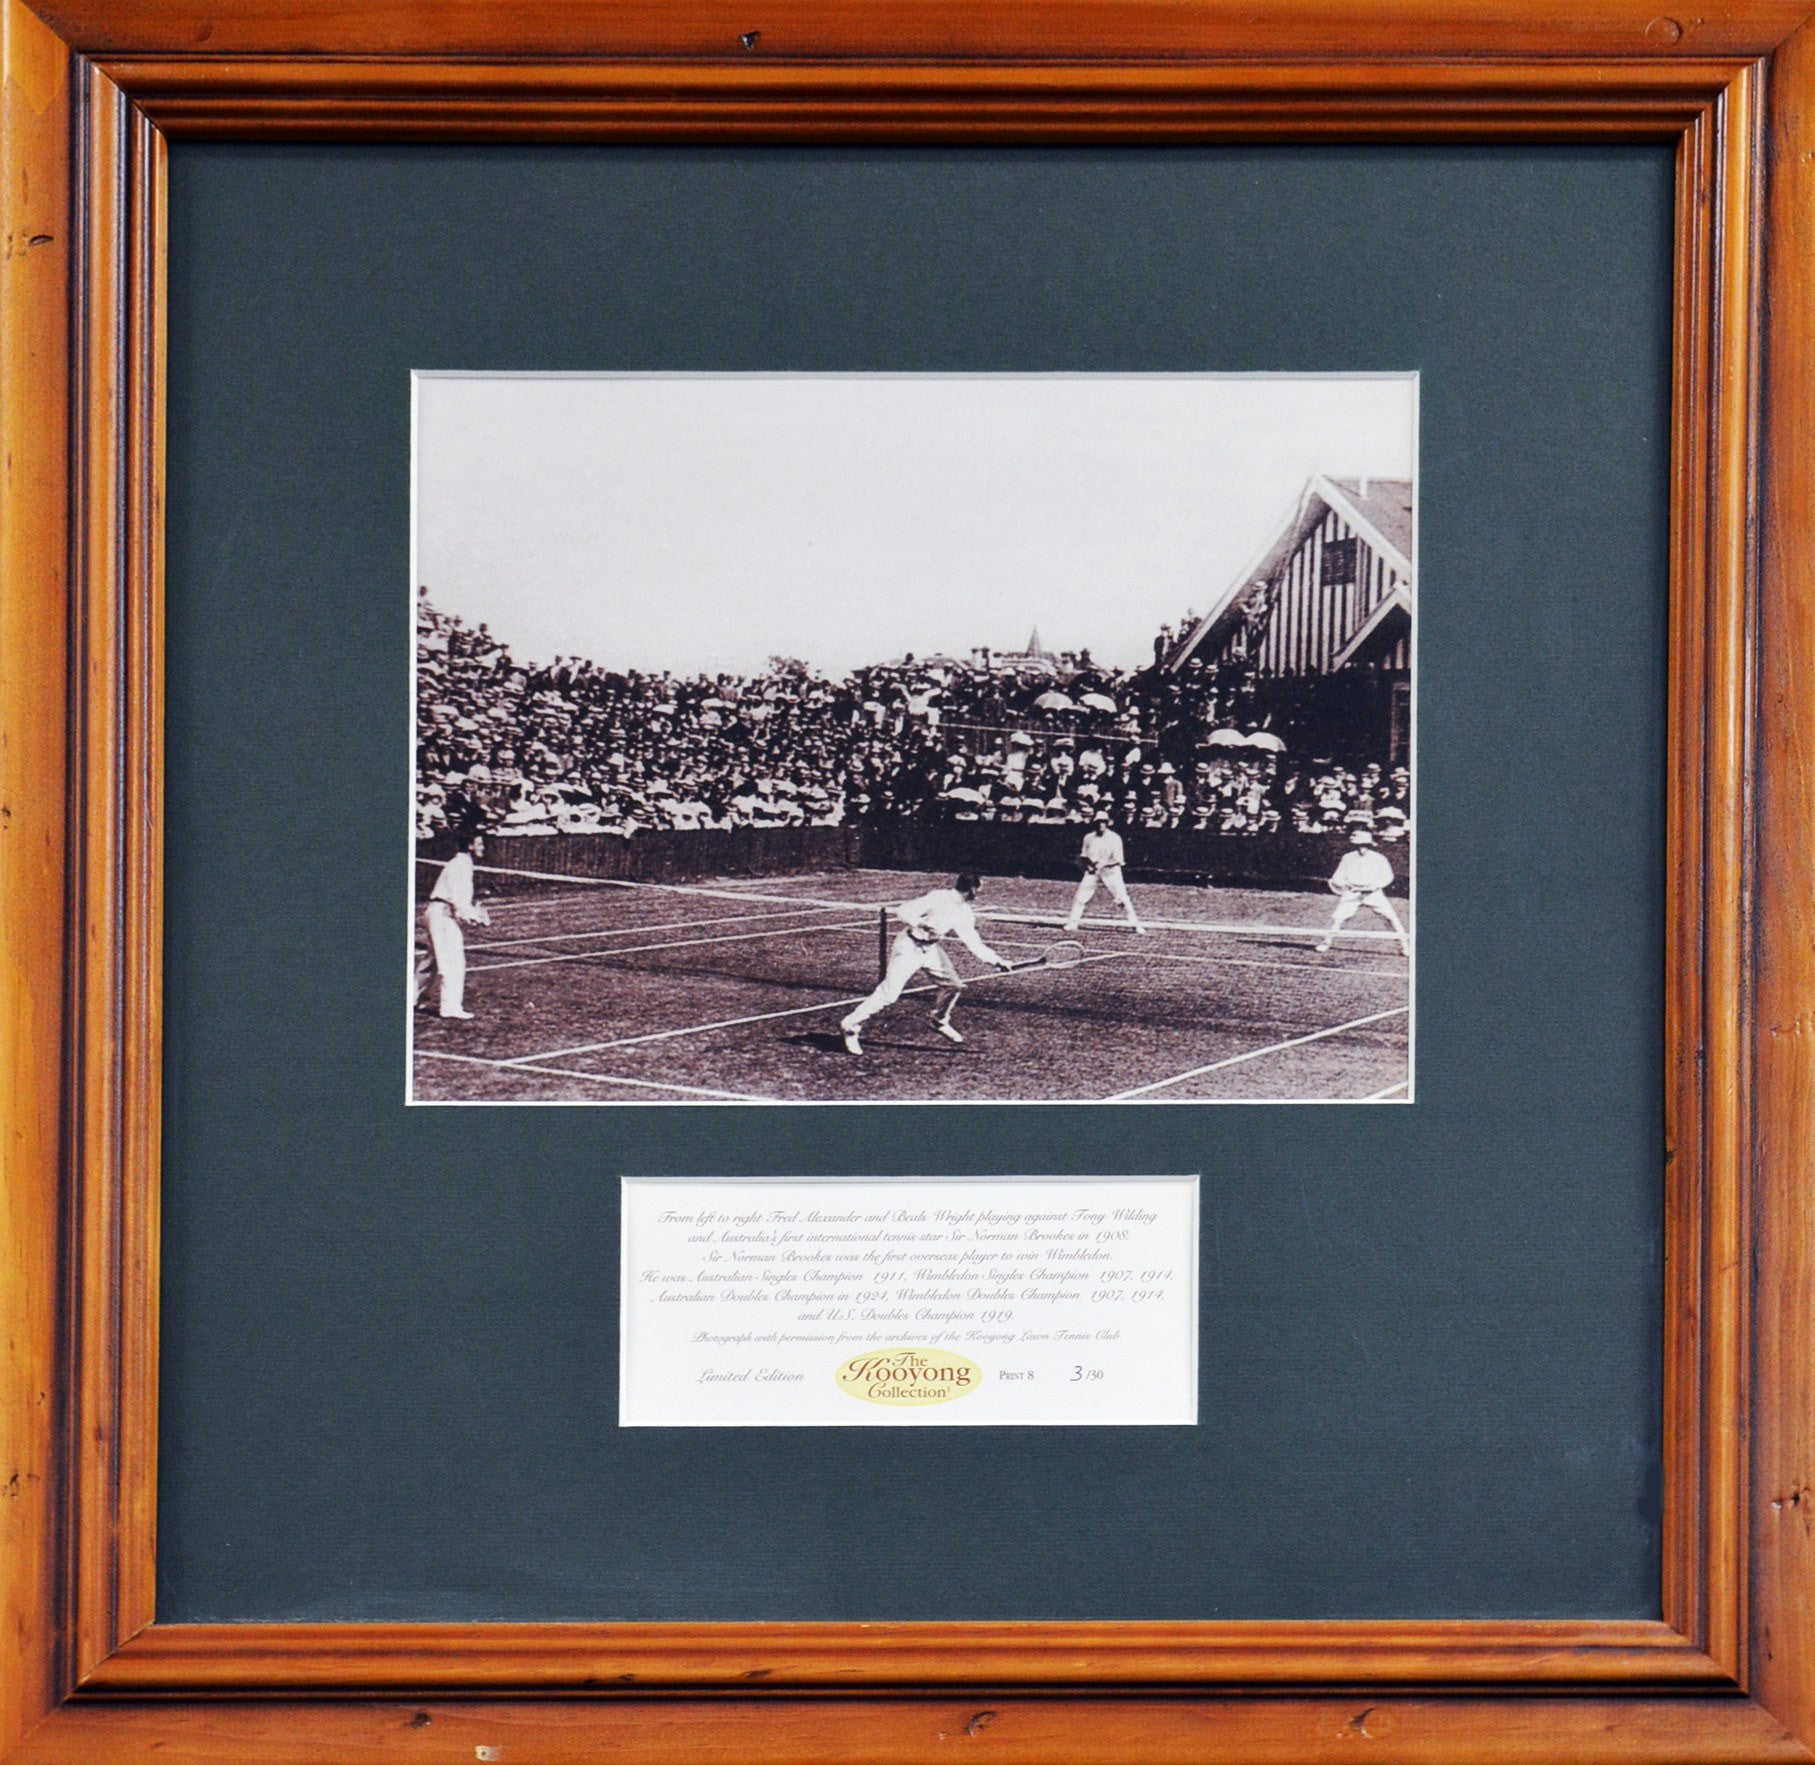 Sir Norman Brookes Kooyong Collection Framed graph